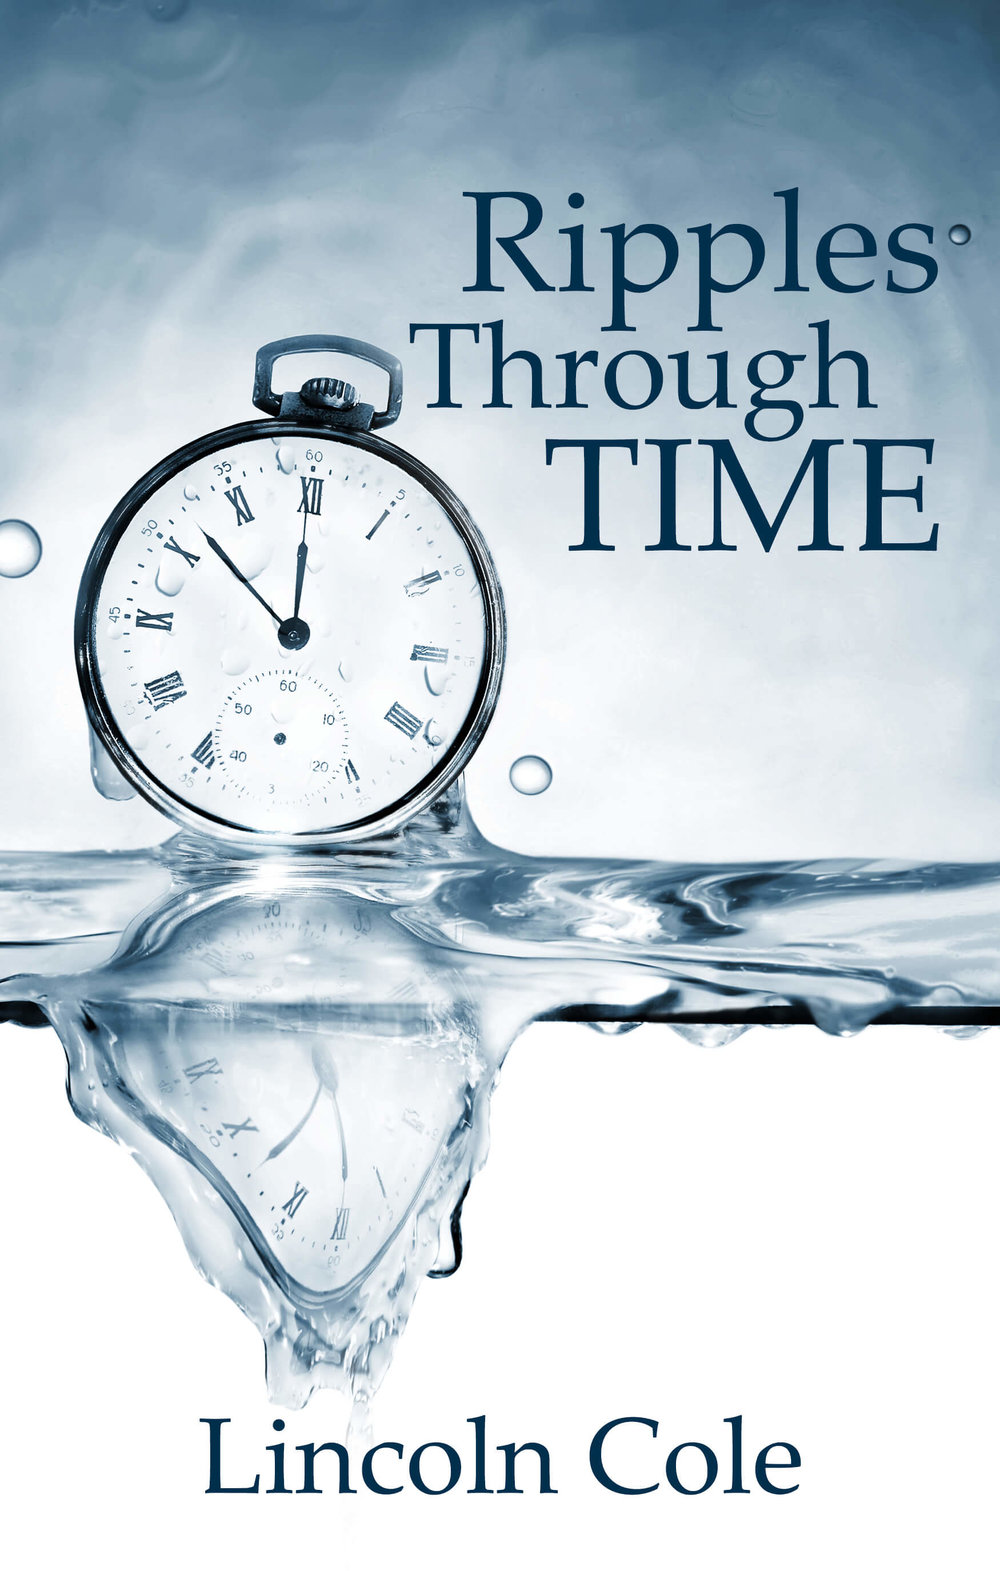 Ripples Through Time - A family man in his eighties, Calvin is alone for the first time in over sixty years. His wife, Emily, recently passed away and he isn't taking her death well. He doesn't remember how to be alone, and he doesn't know if he can forgive himself for the mistakes he made.Edward, a long time family friend, comes to check on him during this time of need. Edward understands just how dangerous things are for Calvin, and he's hoping to talk him out of doing the unthinkable. He just hopes he isn't too late to help.Help, however, isn't the easiest thing to give, and it can be even more difficult to accept....Love, loss, and forgiveness weave inextricably into this tale of friendship and hope.